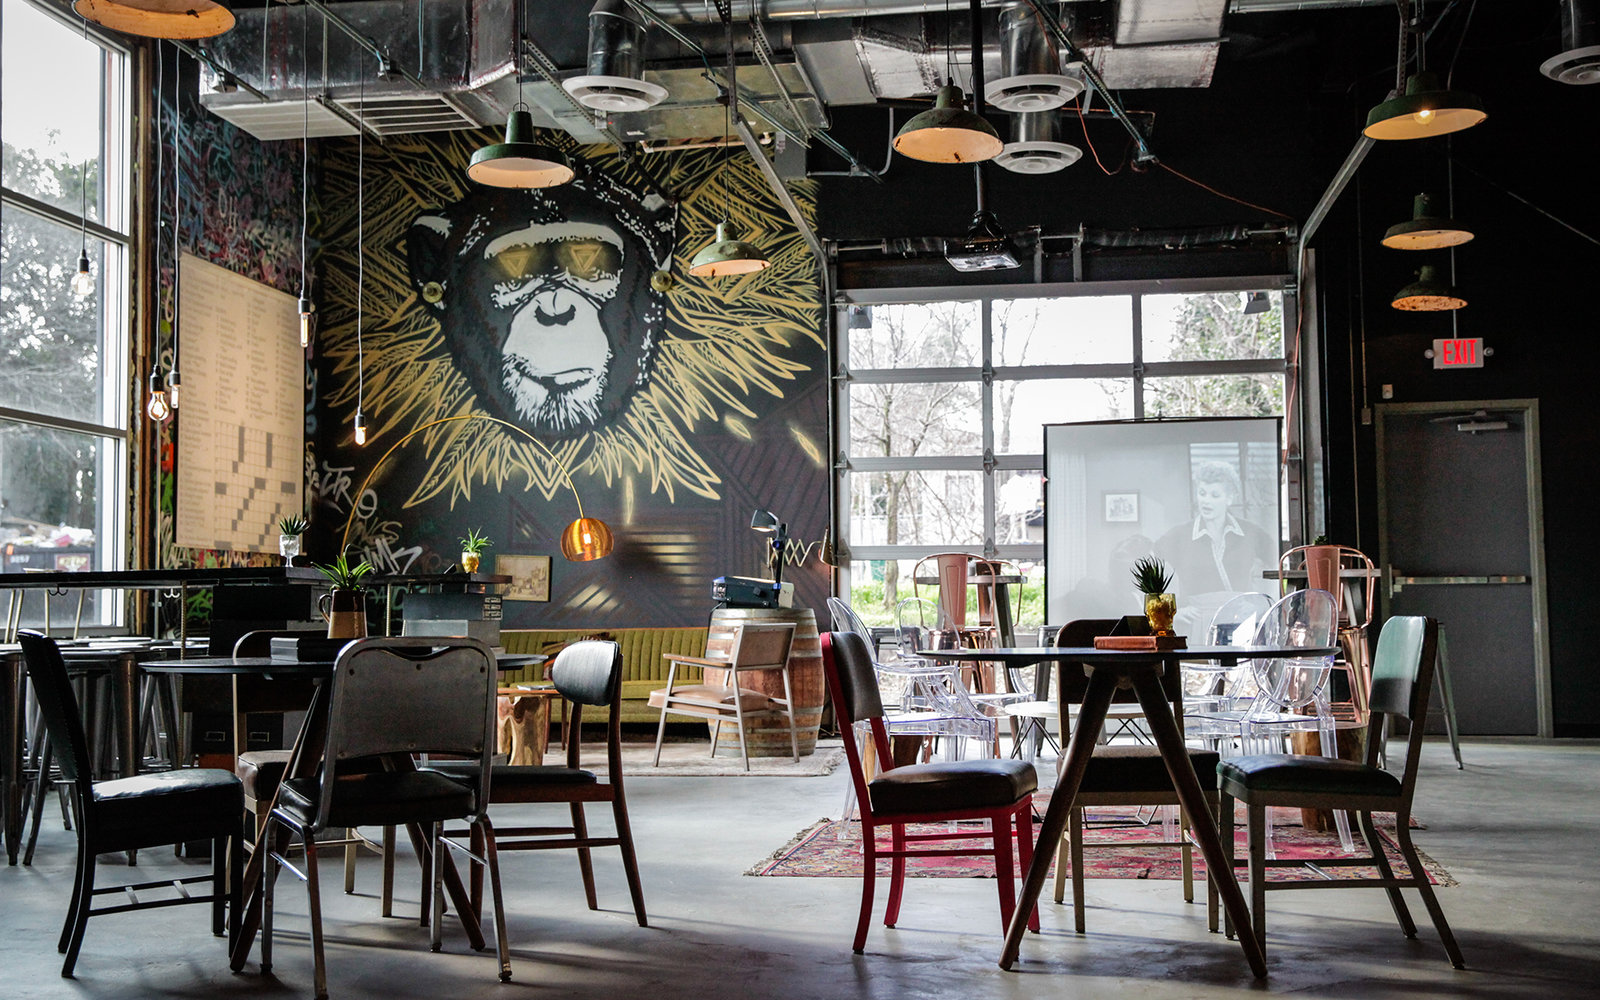 Infinite Monkey Theorem Travel Leisure